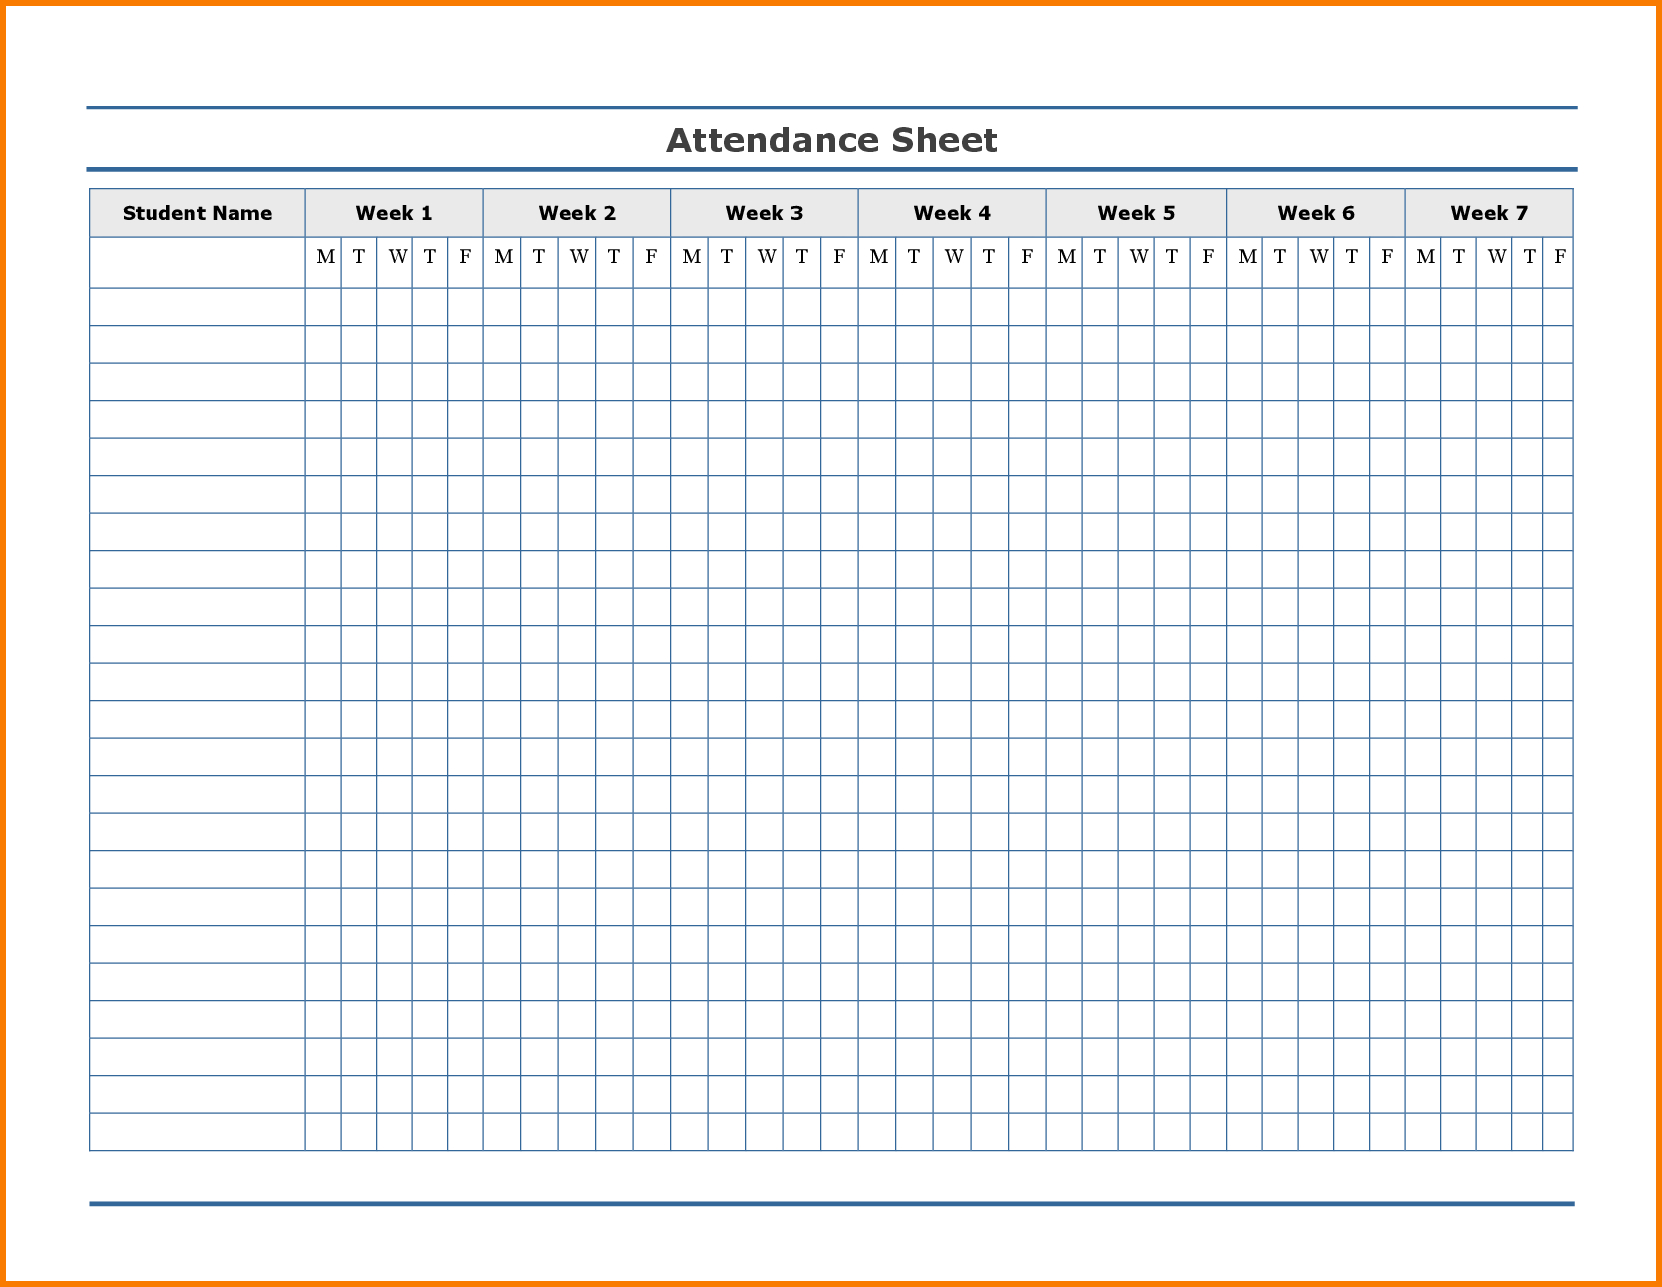 Employee Attendance Spreadsheet Template With Free Employee Attendance Calendar  Employee Tracker Templates 2019